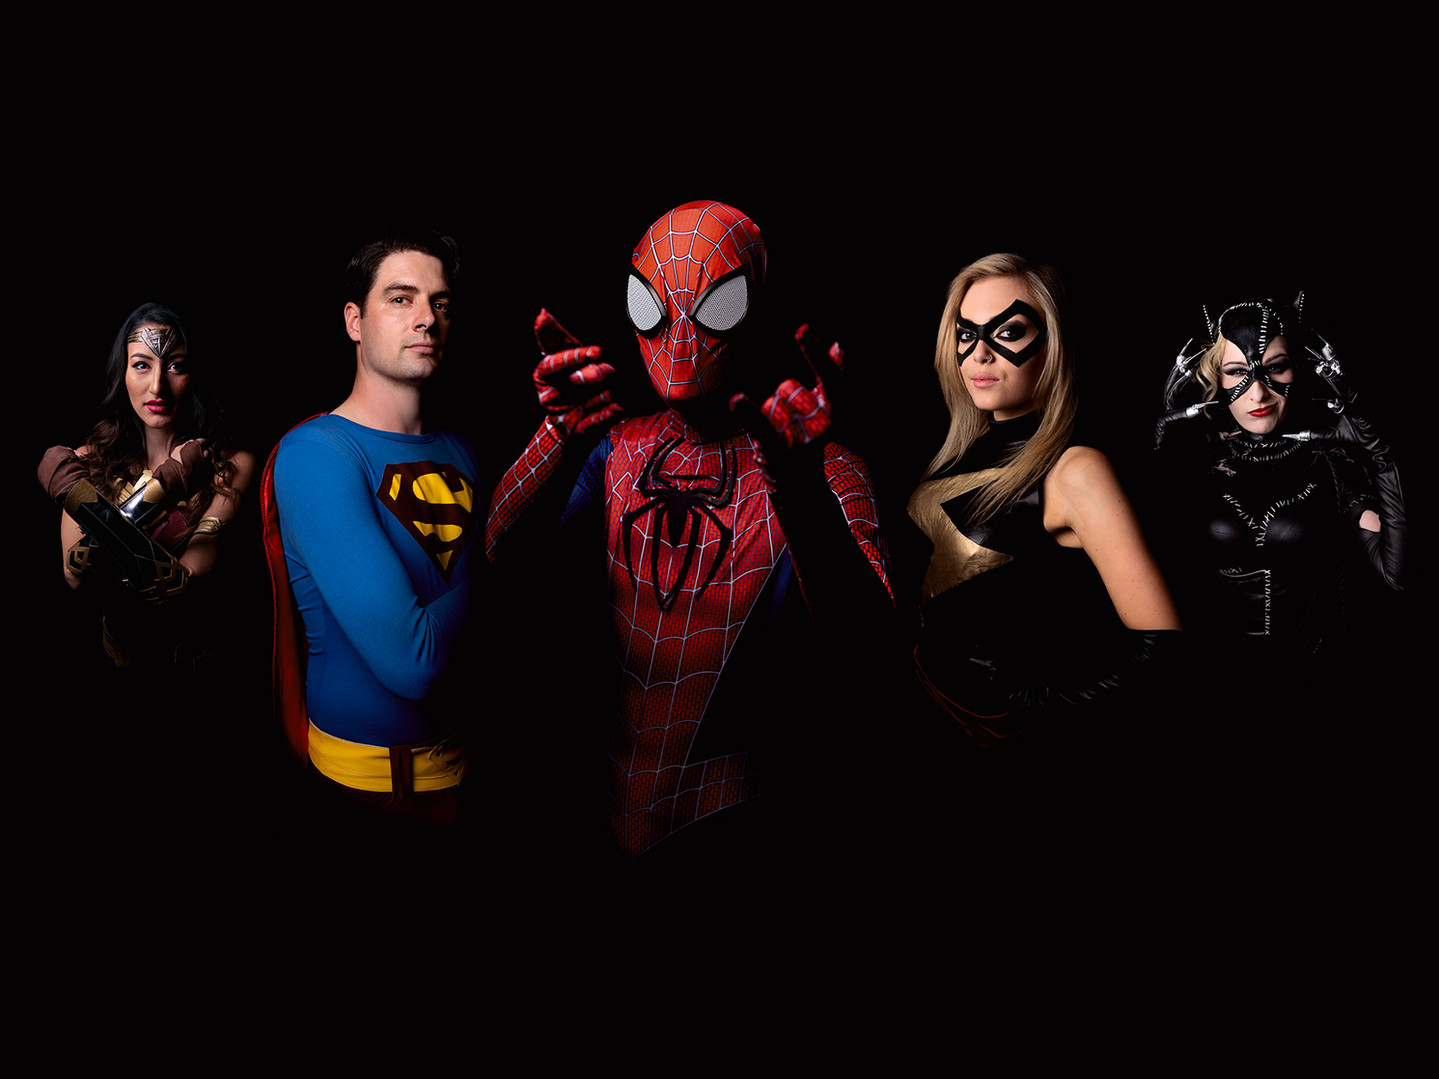 The Super Heroes from Comic Con